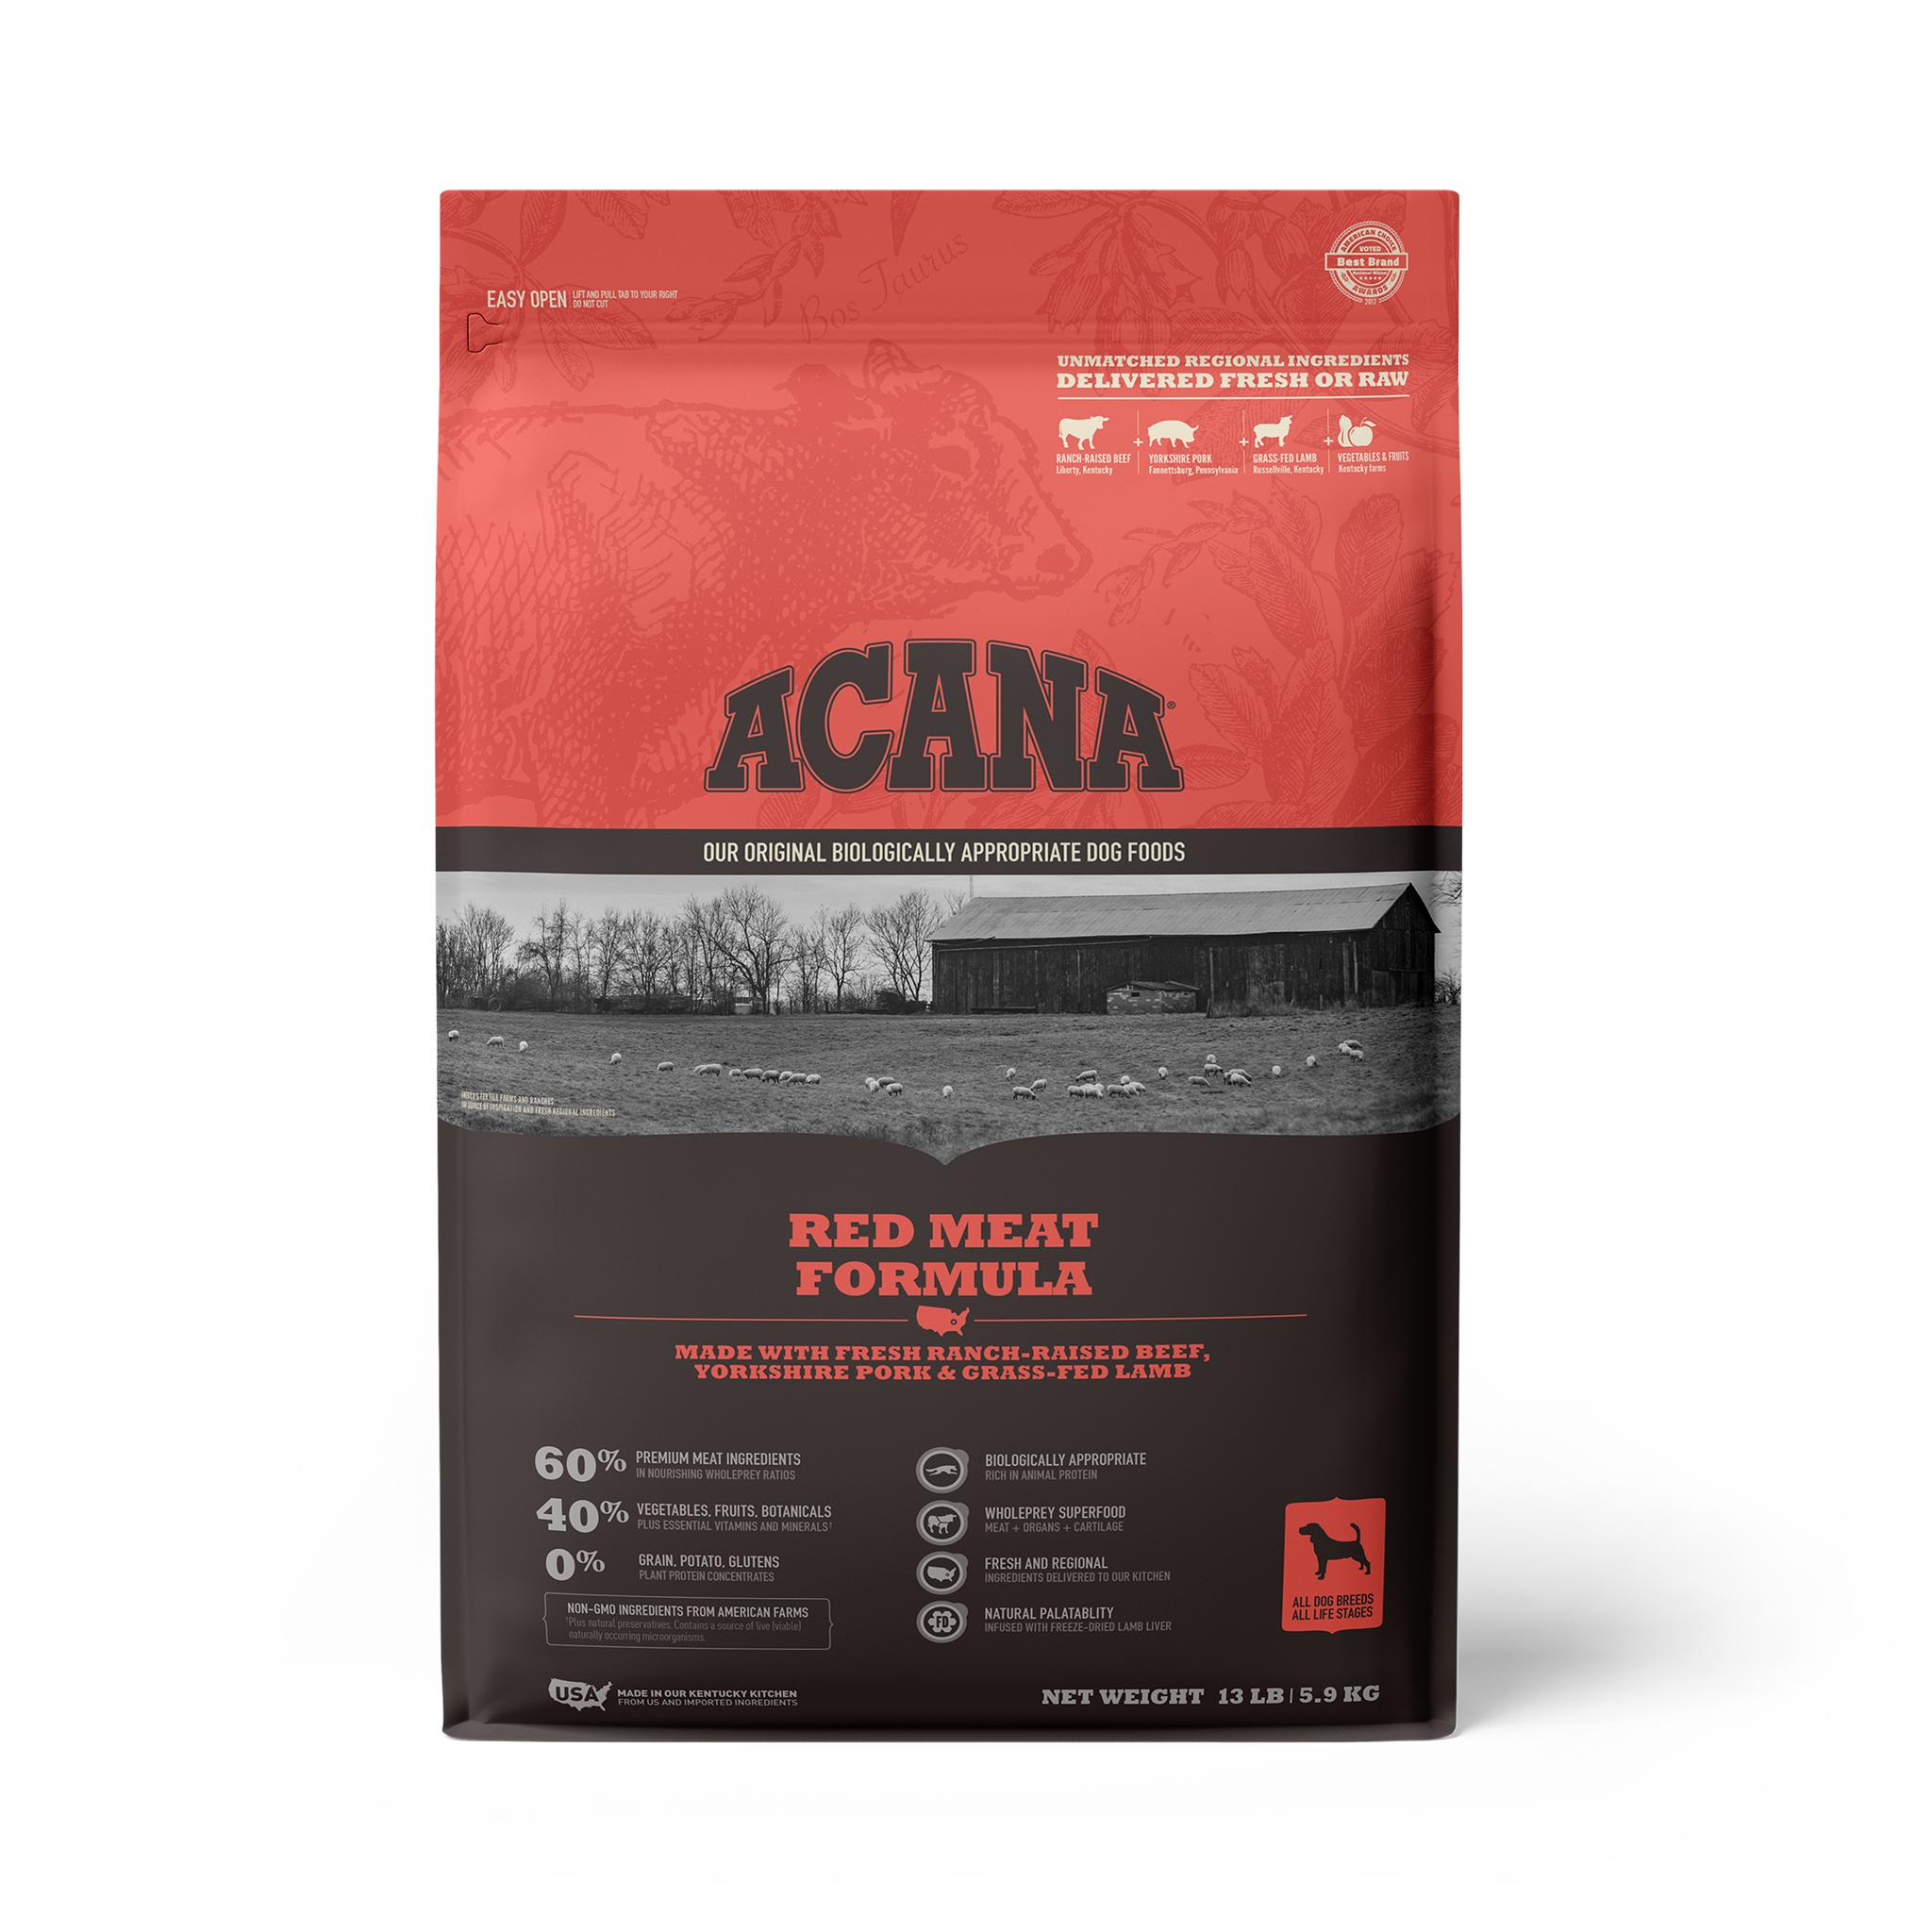 ACANA Red Meat Grain-Free Dry Dog Food, 13-lb